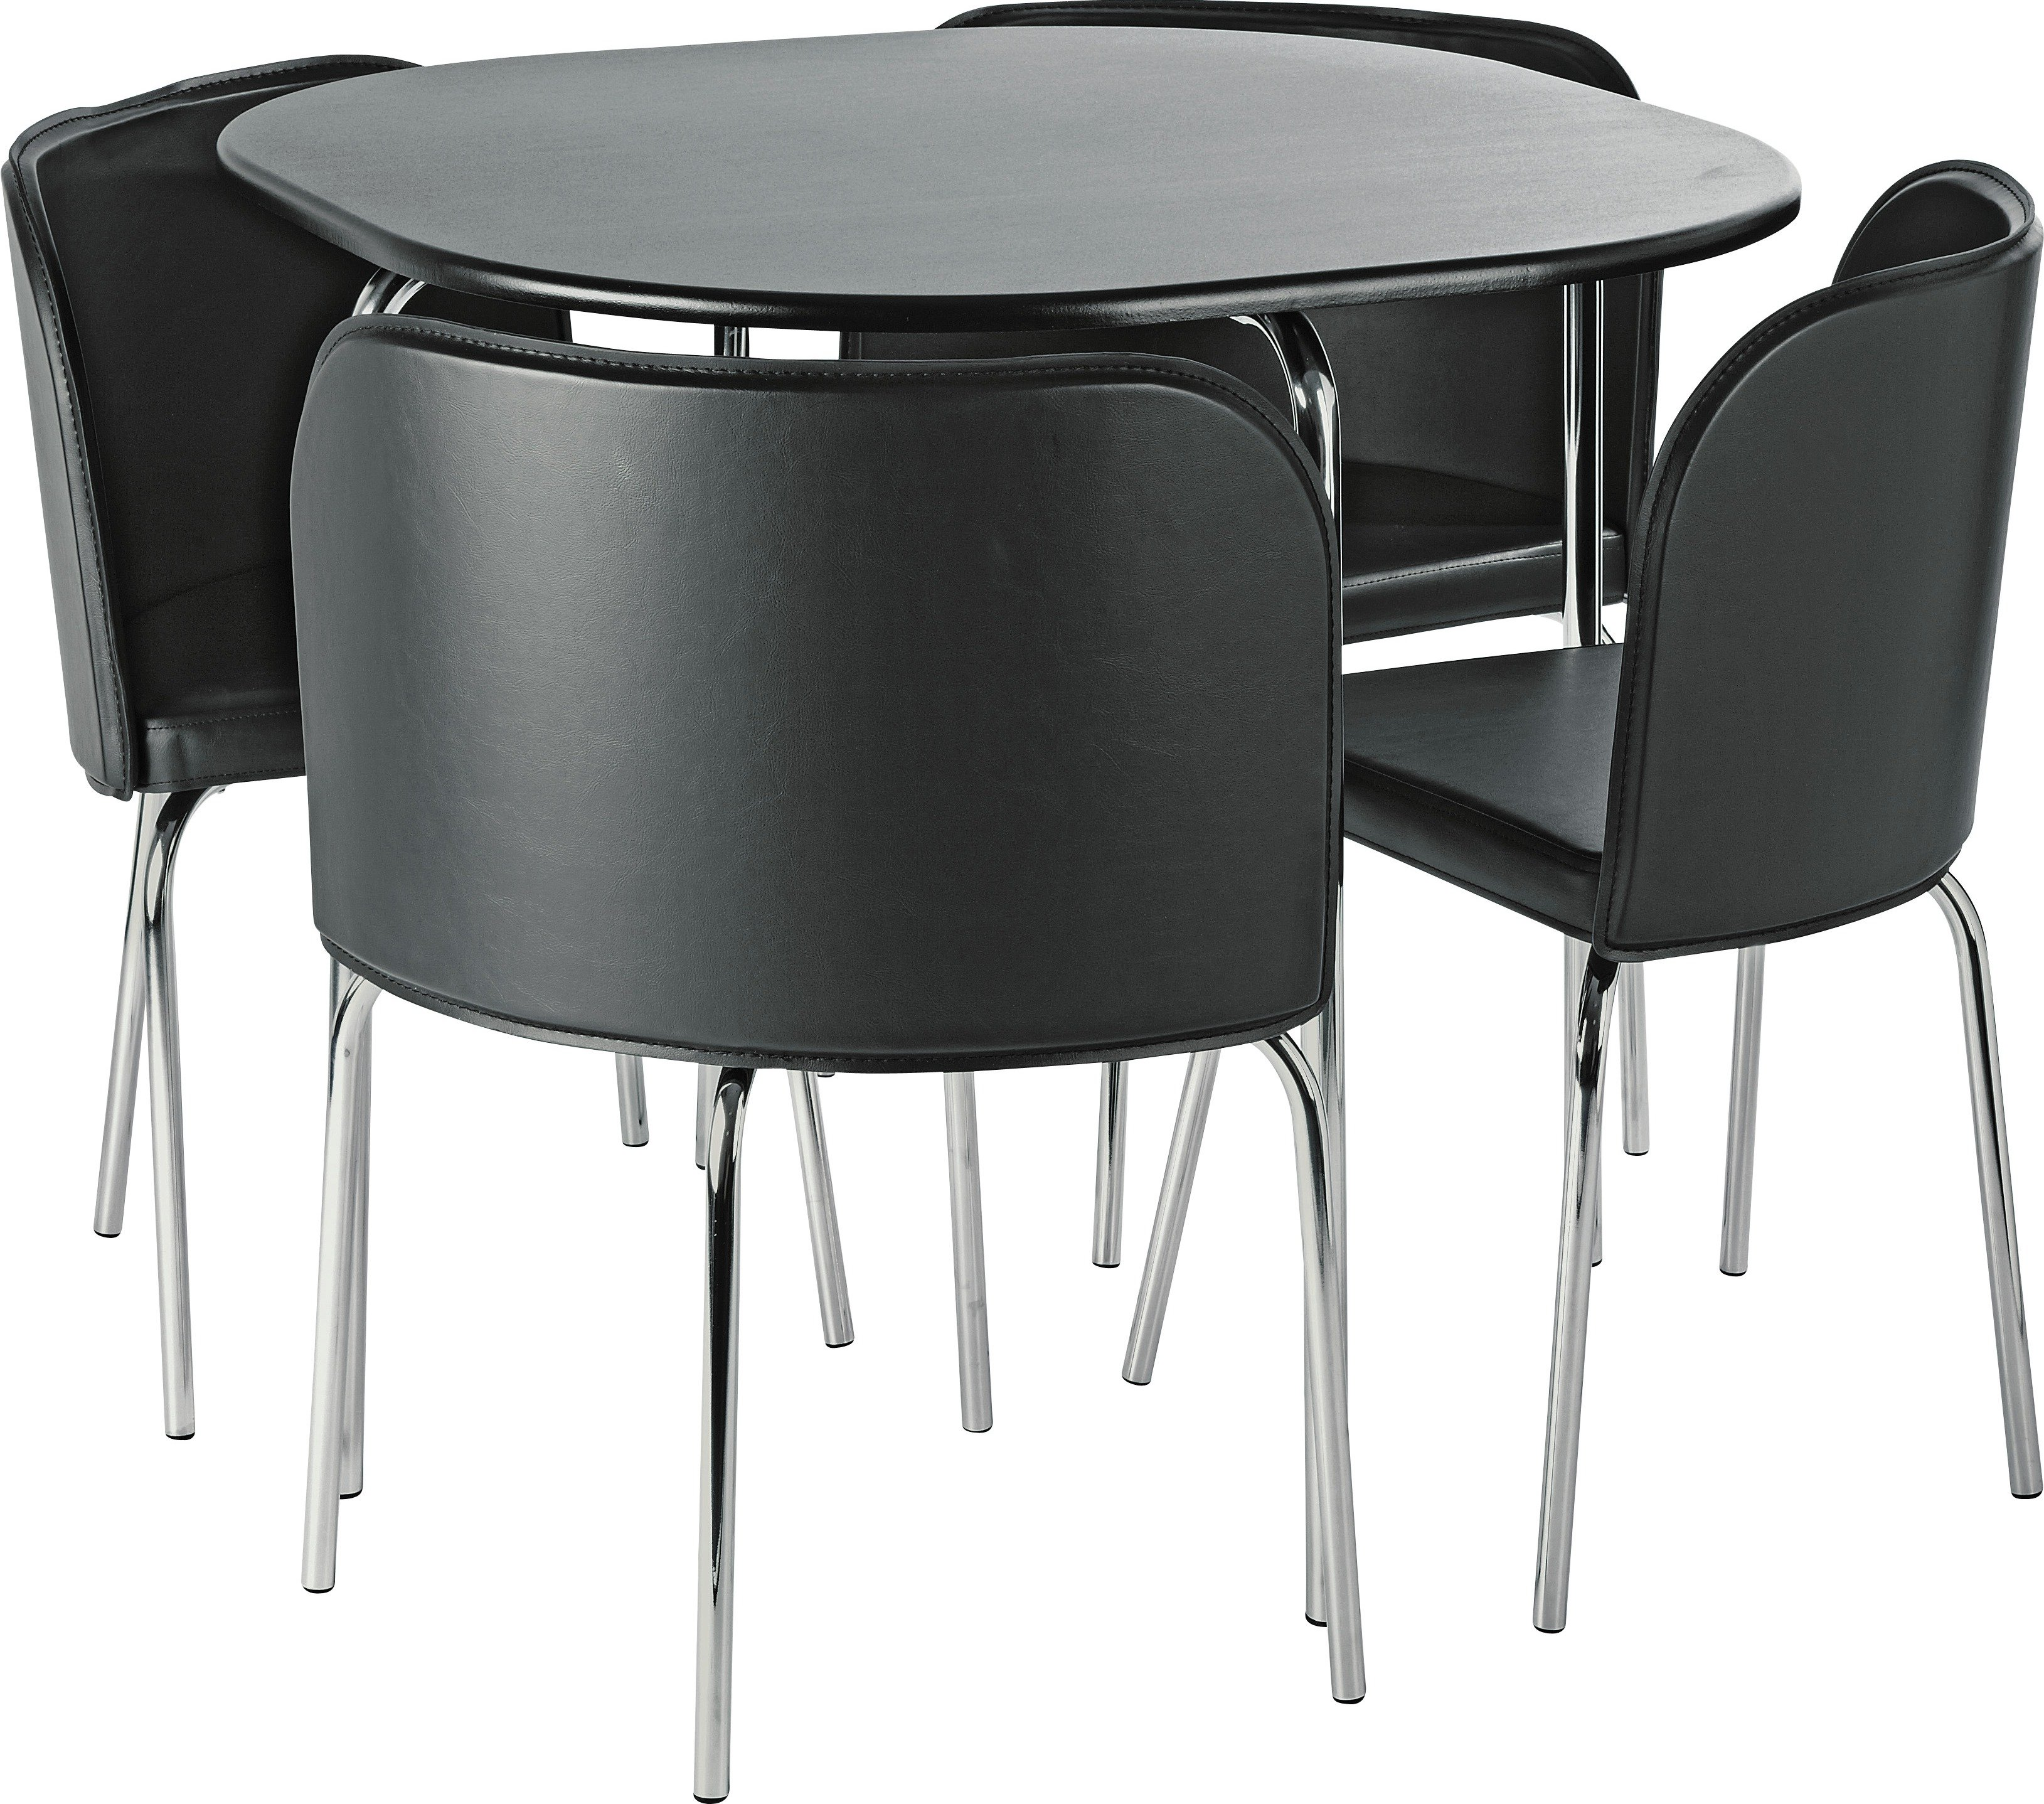 Hygena Amparo Dining Table U0026 4 Chairs   Black Part 48